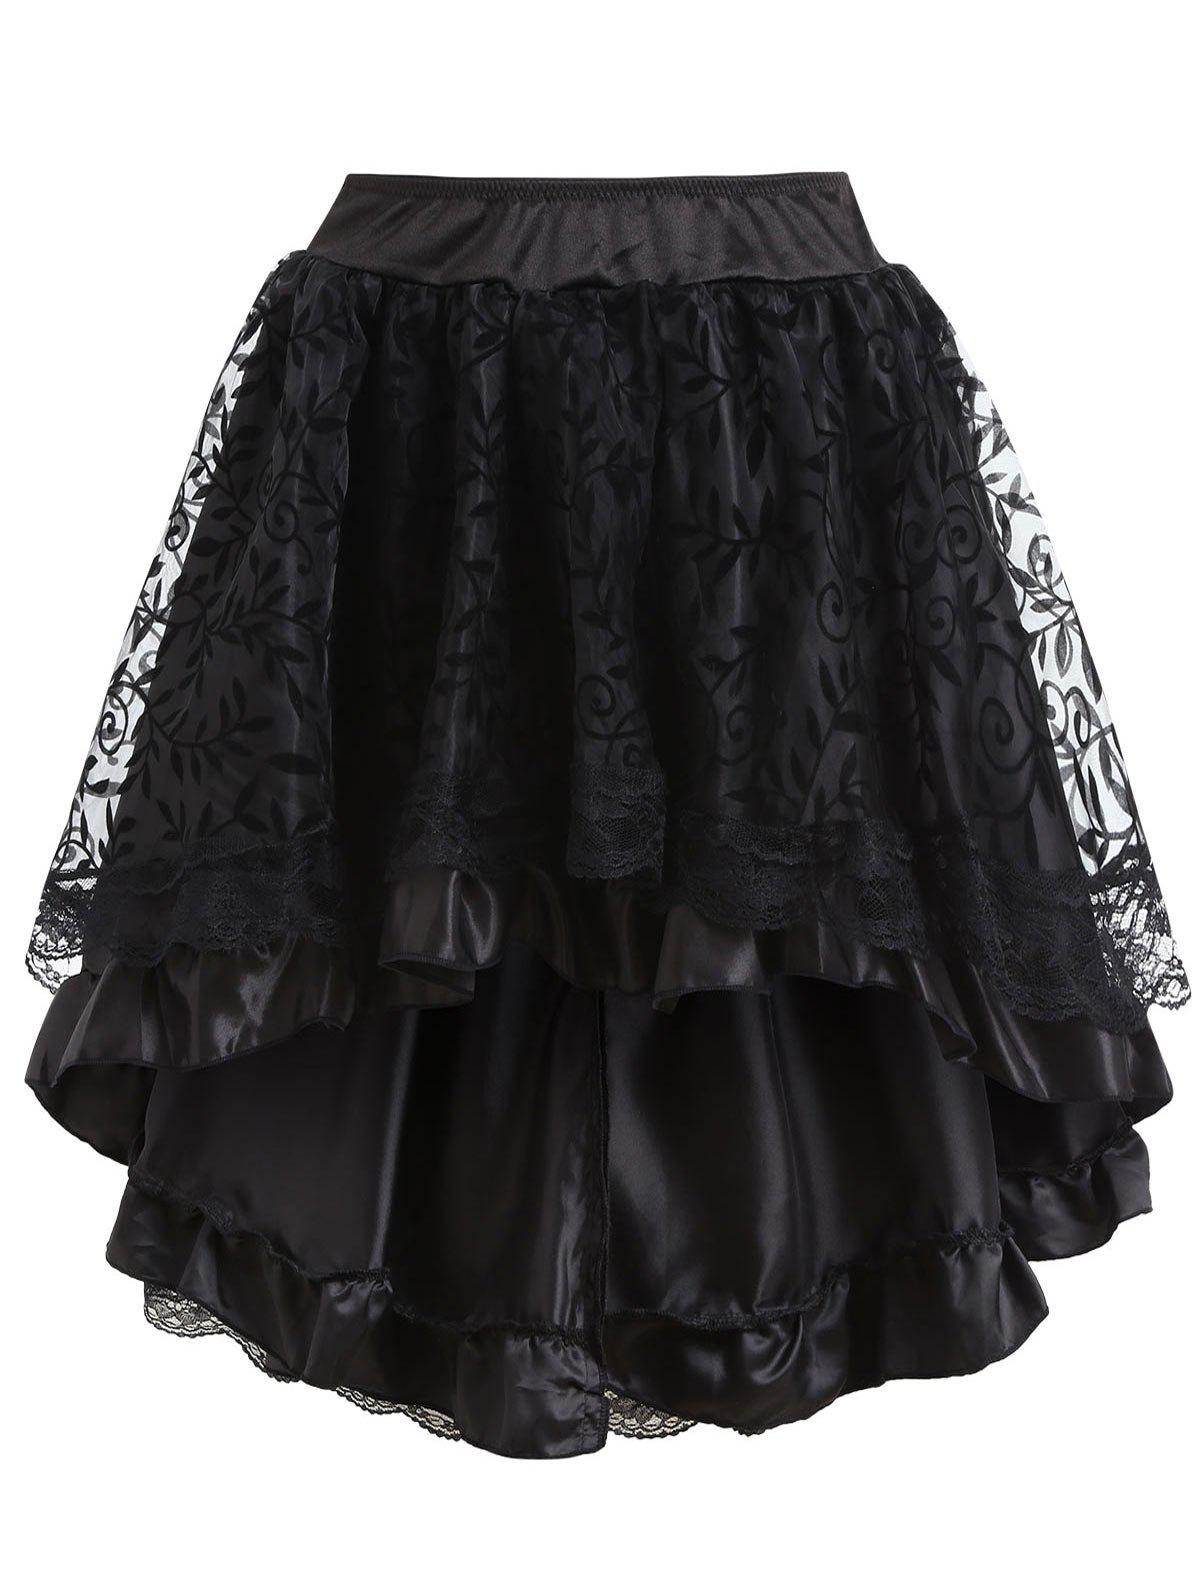 Flounce High Low Lace Trim Cosplay Skirt - BLACK L